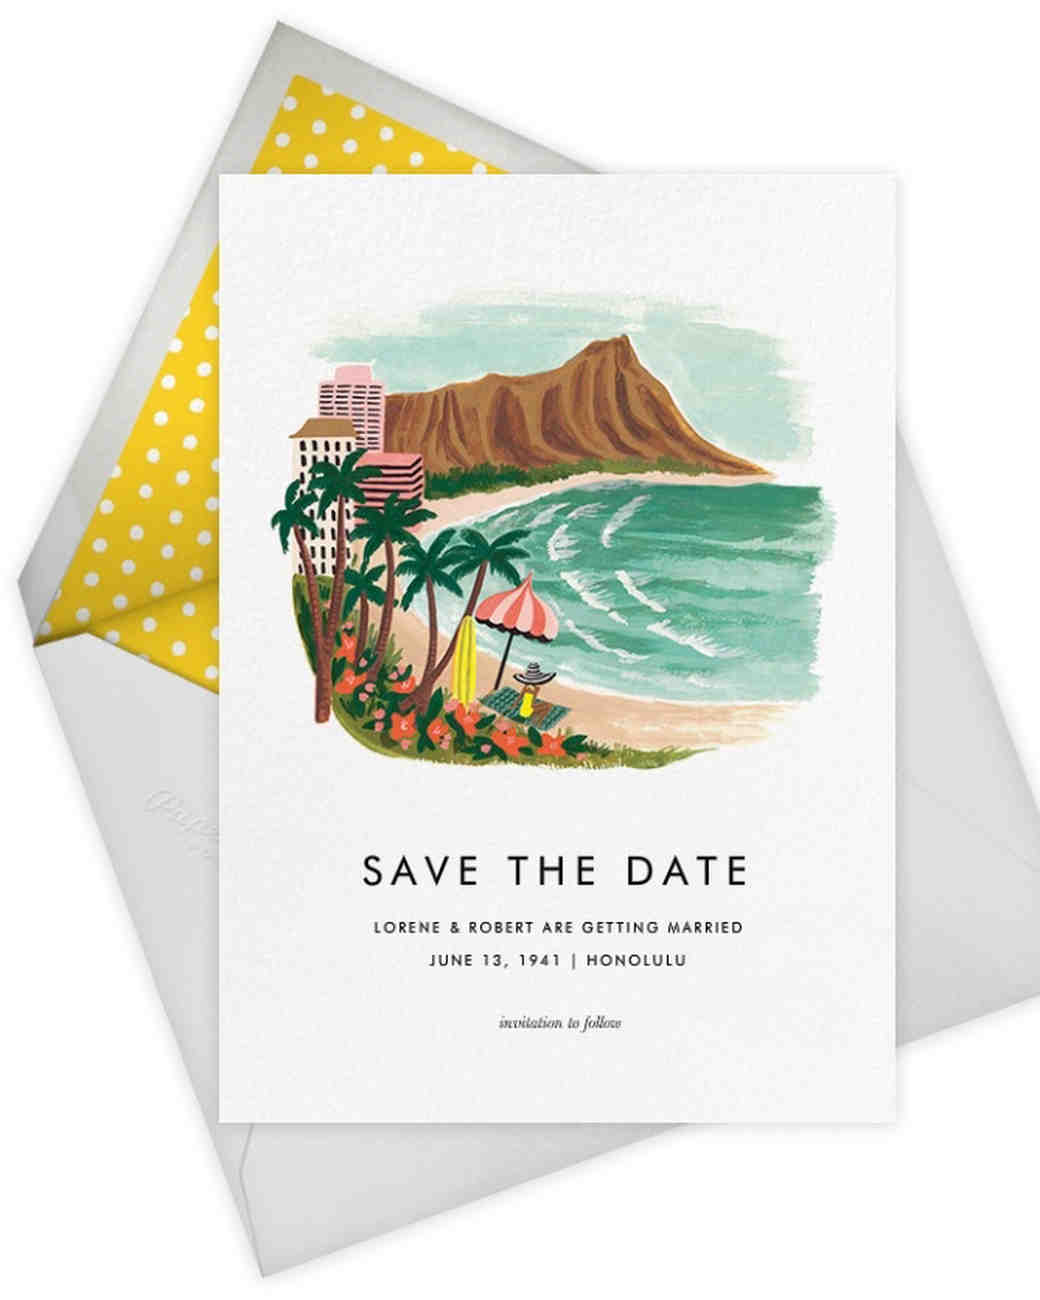 Darcy's Diary: Rifle Paper Co. Invites, Georgetown Cupcakes, and Sarah Jessica Parker's New Shoe Line